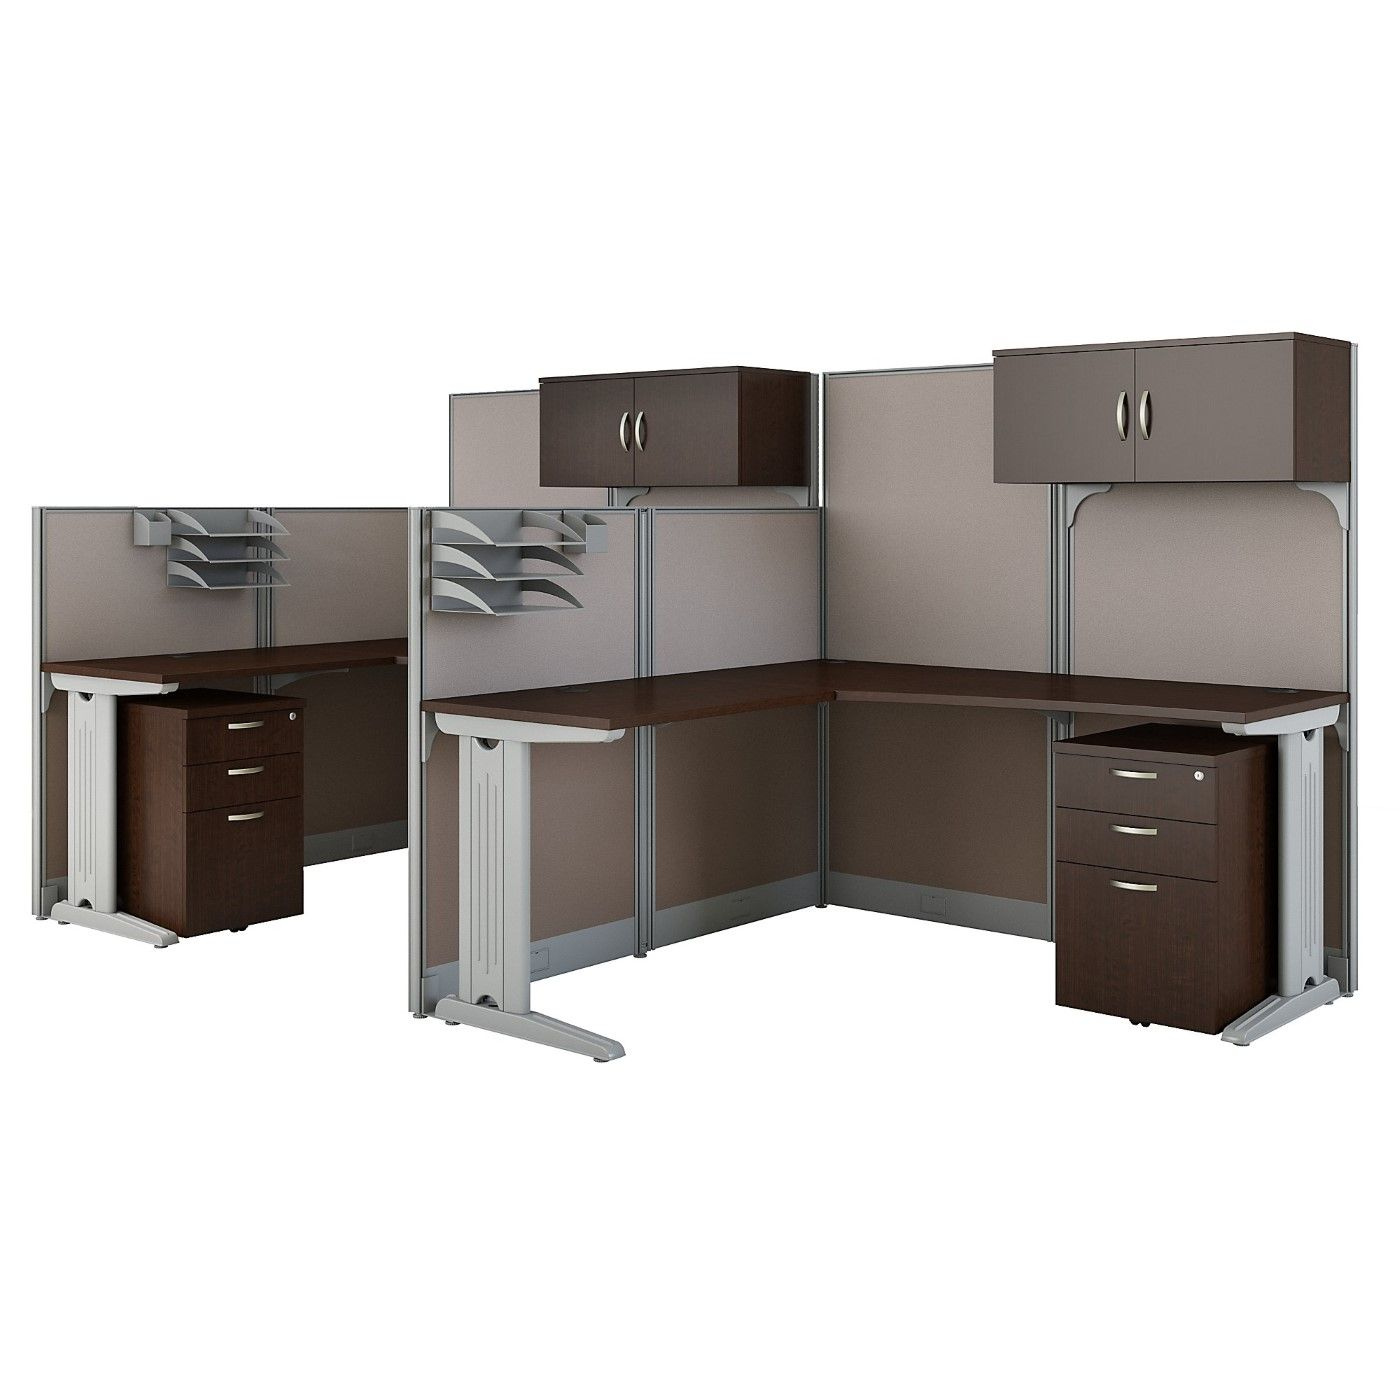 BUSH BUSINESS FURNITURE OFFICE IN AN HOUR 2 PERSON L SHAPED CUBICLE WORKSTATIONS. FREE SHIPPING SALE DEDUCT 10% MORE ENTER '10percent' IN COUPON CODE BOX WHILE CHECKING OUT. ENDS 5-31-20.